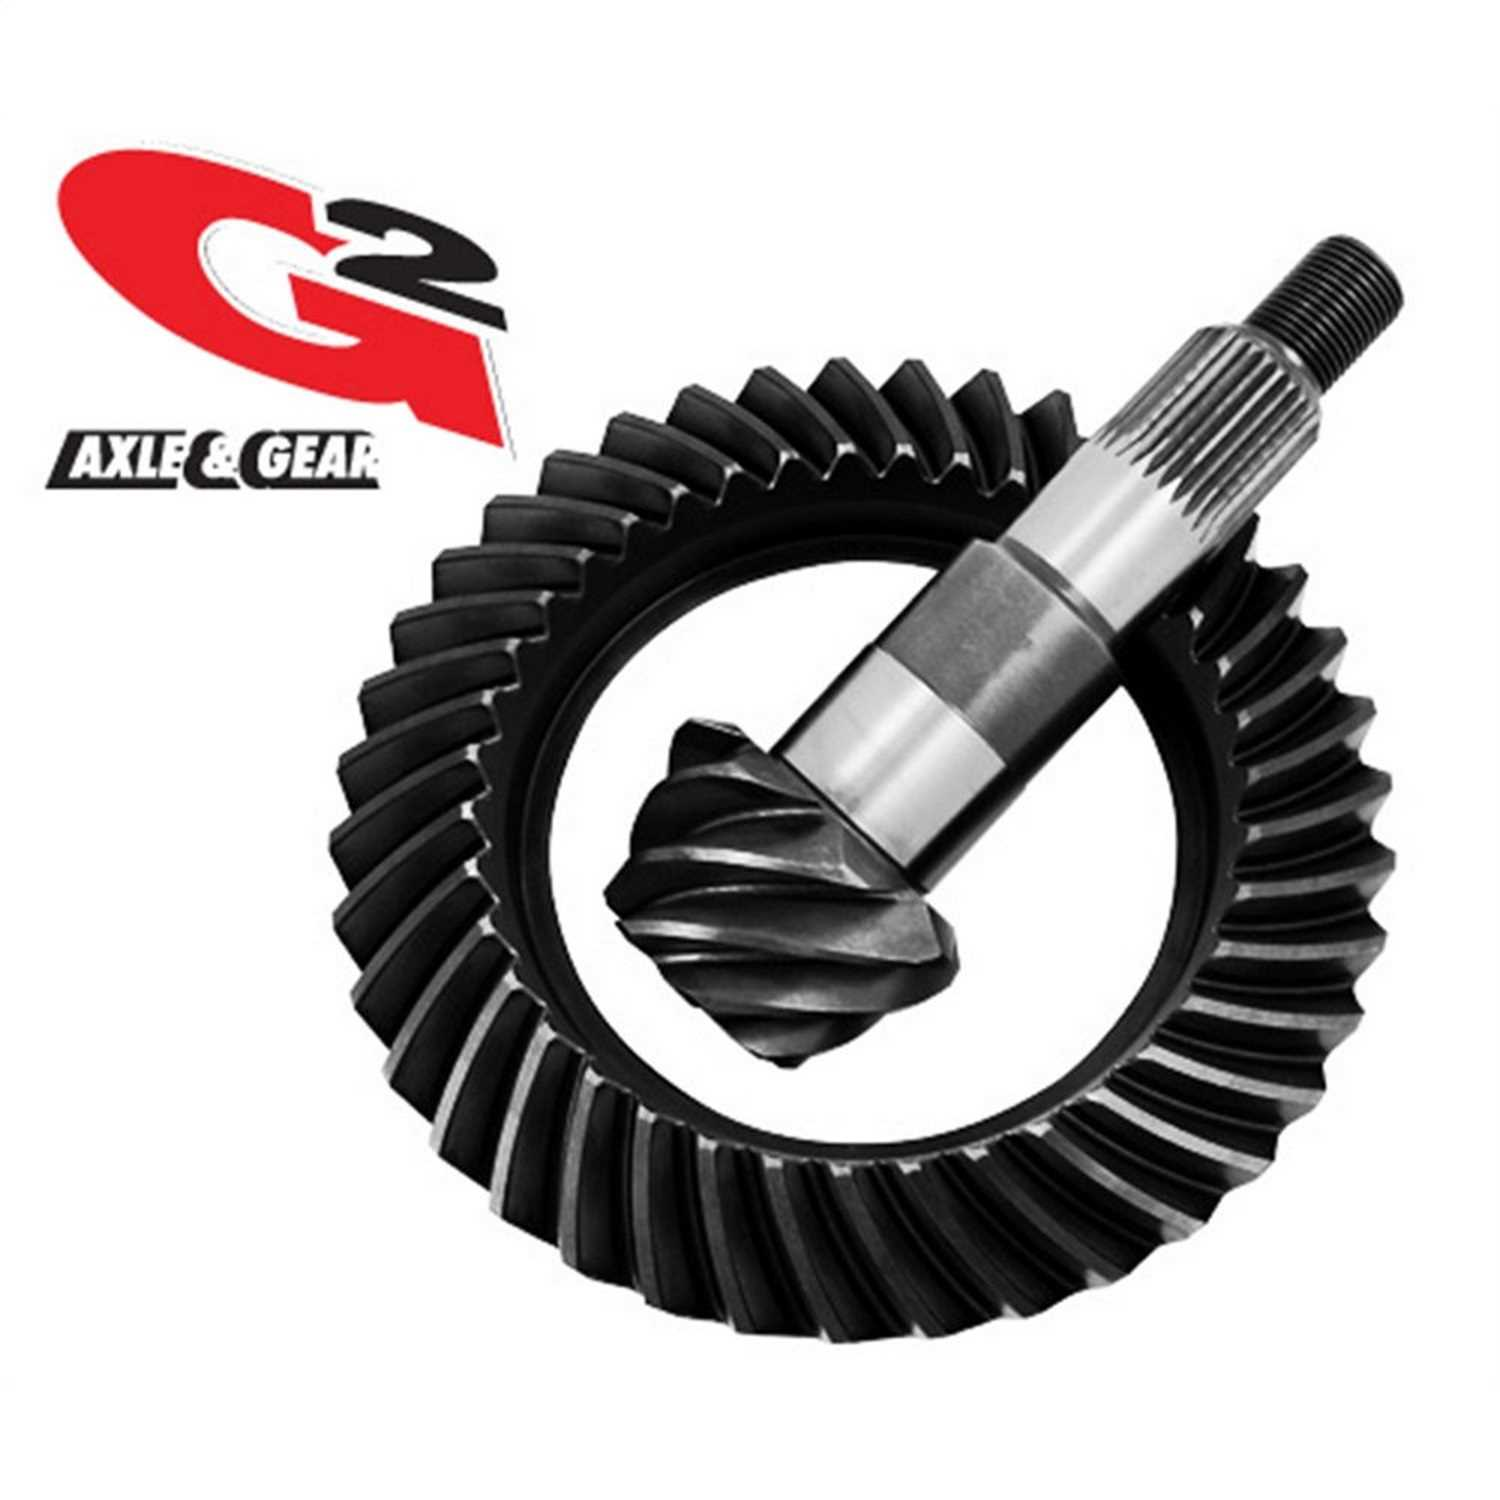 2-2011-457 G2 Axle and Gear Ring and Pinion Set